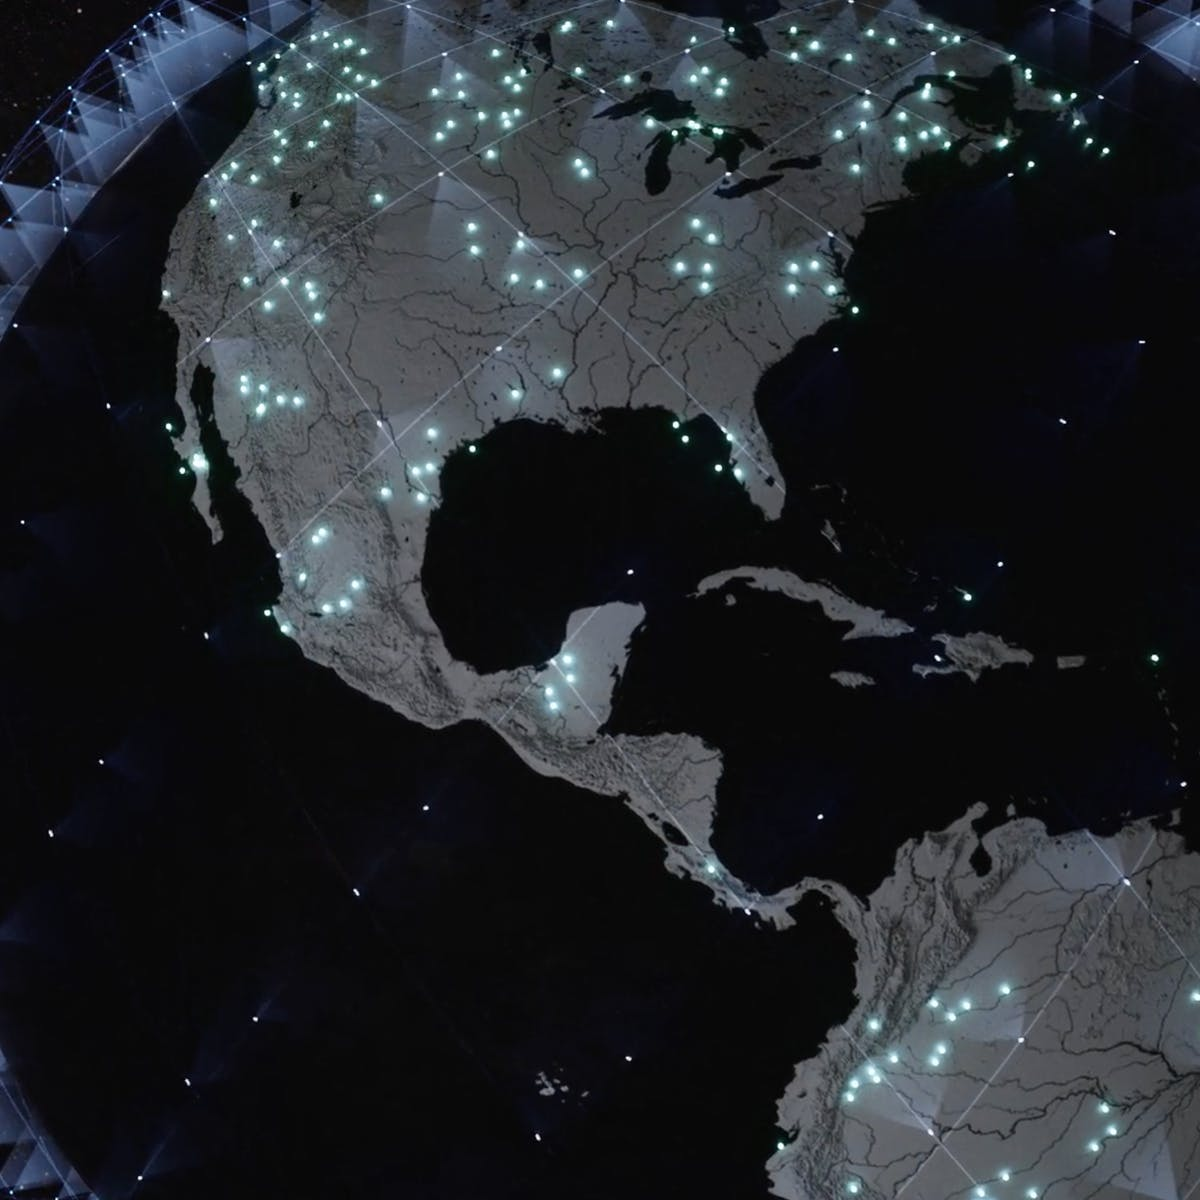 Starlink: Elon Musk demoed SpaceX's internet service in a very public way